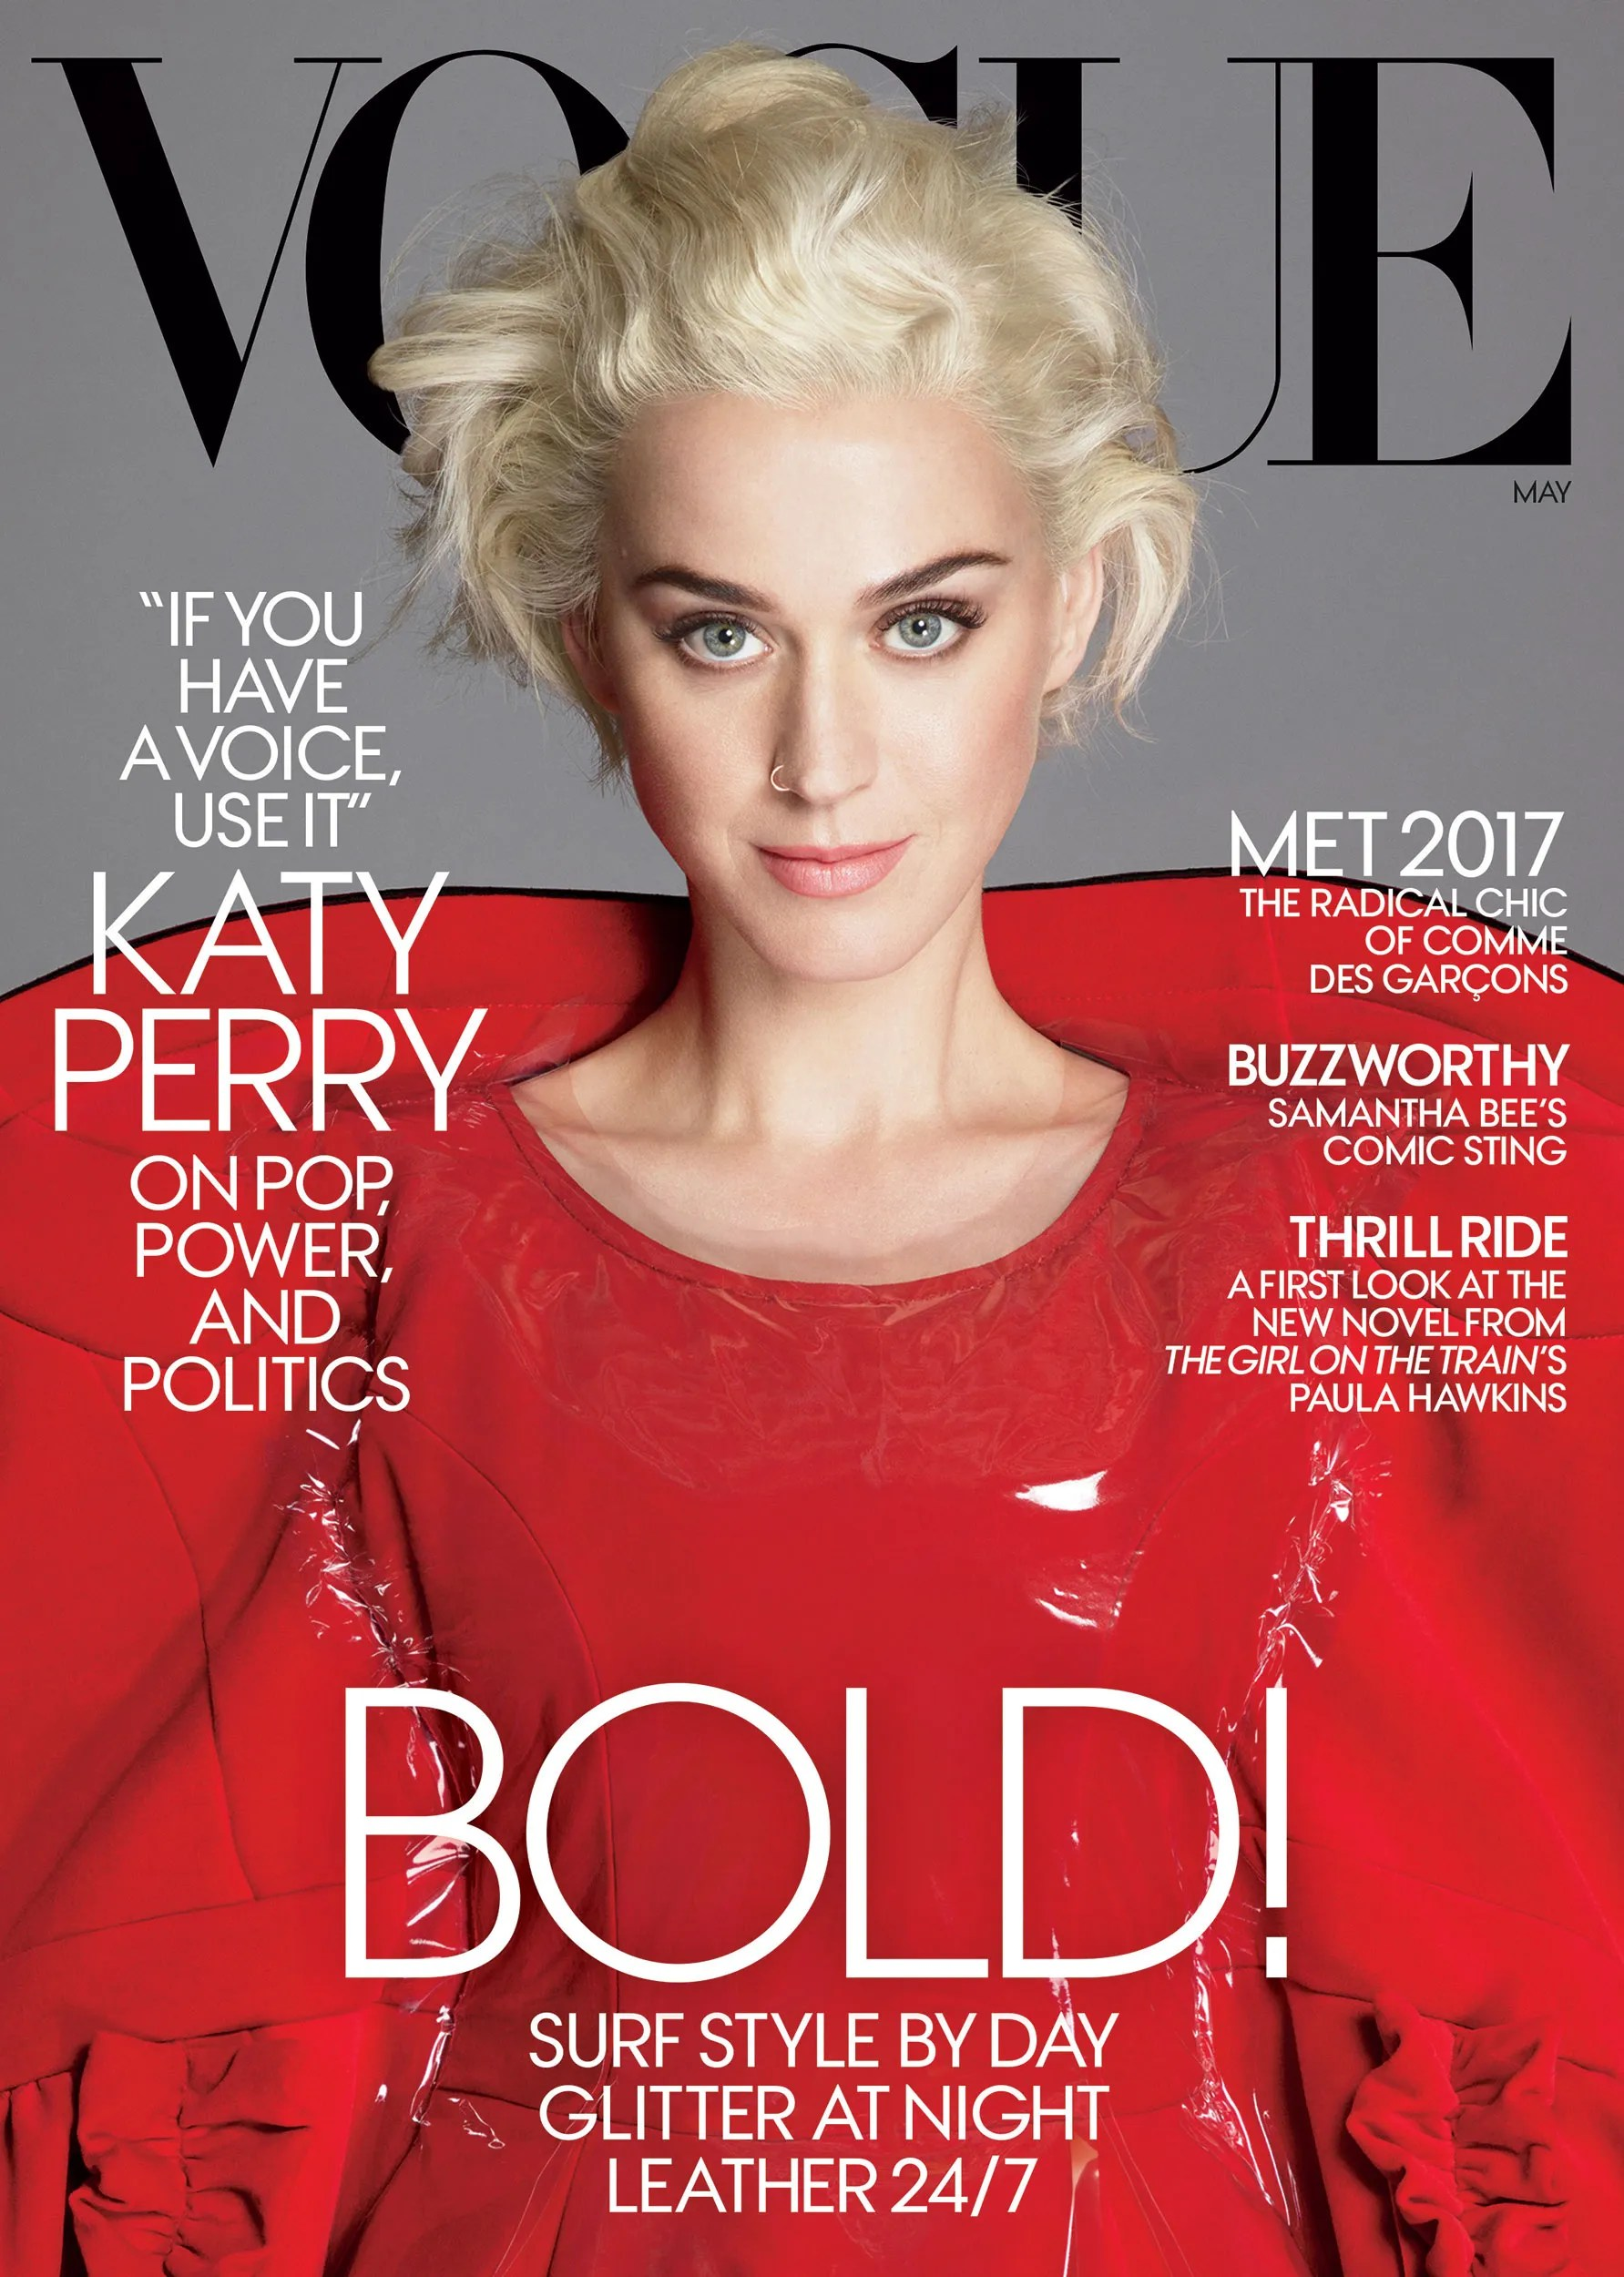 Image result for katy perry vogue cover may 2017